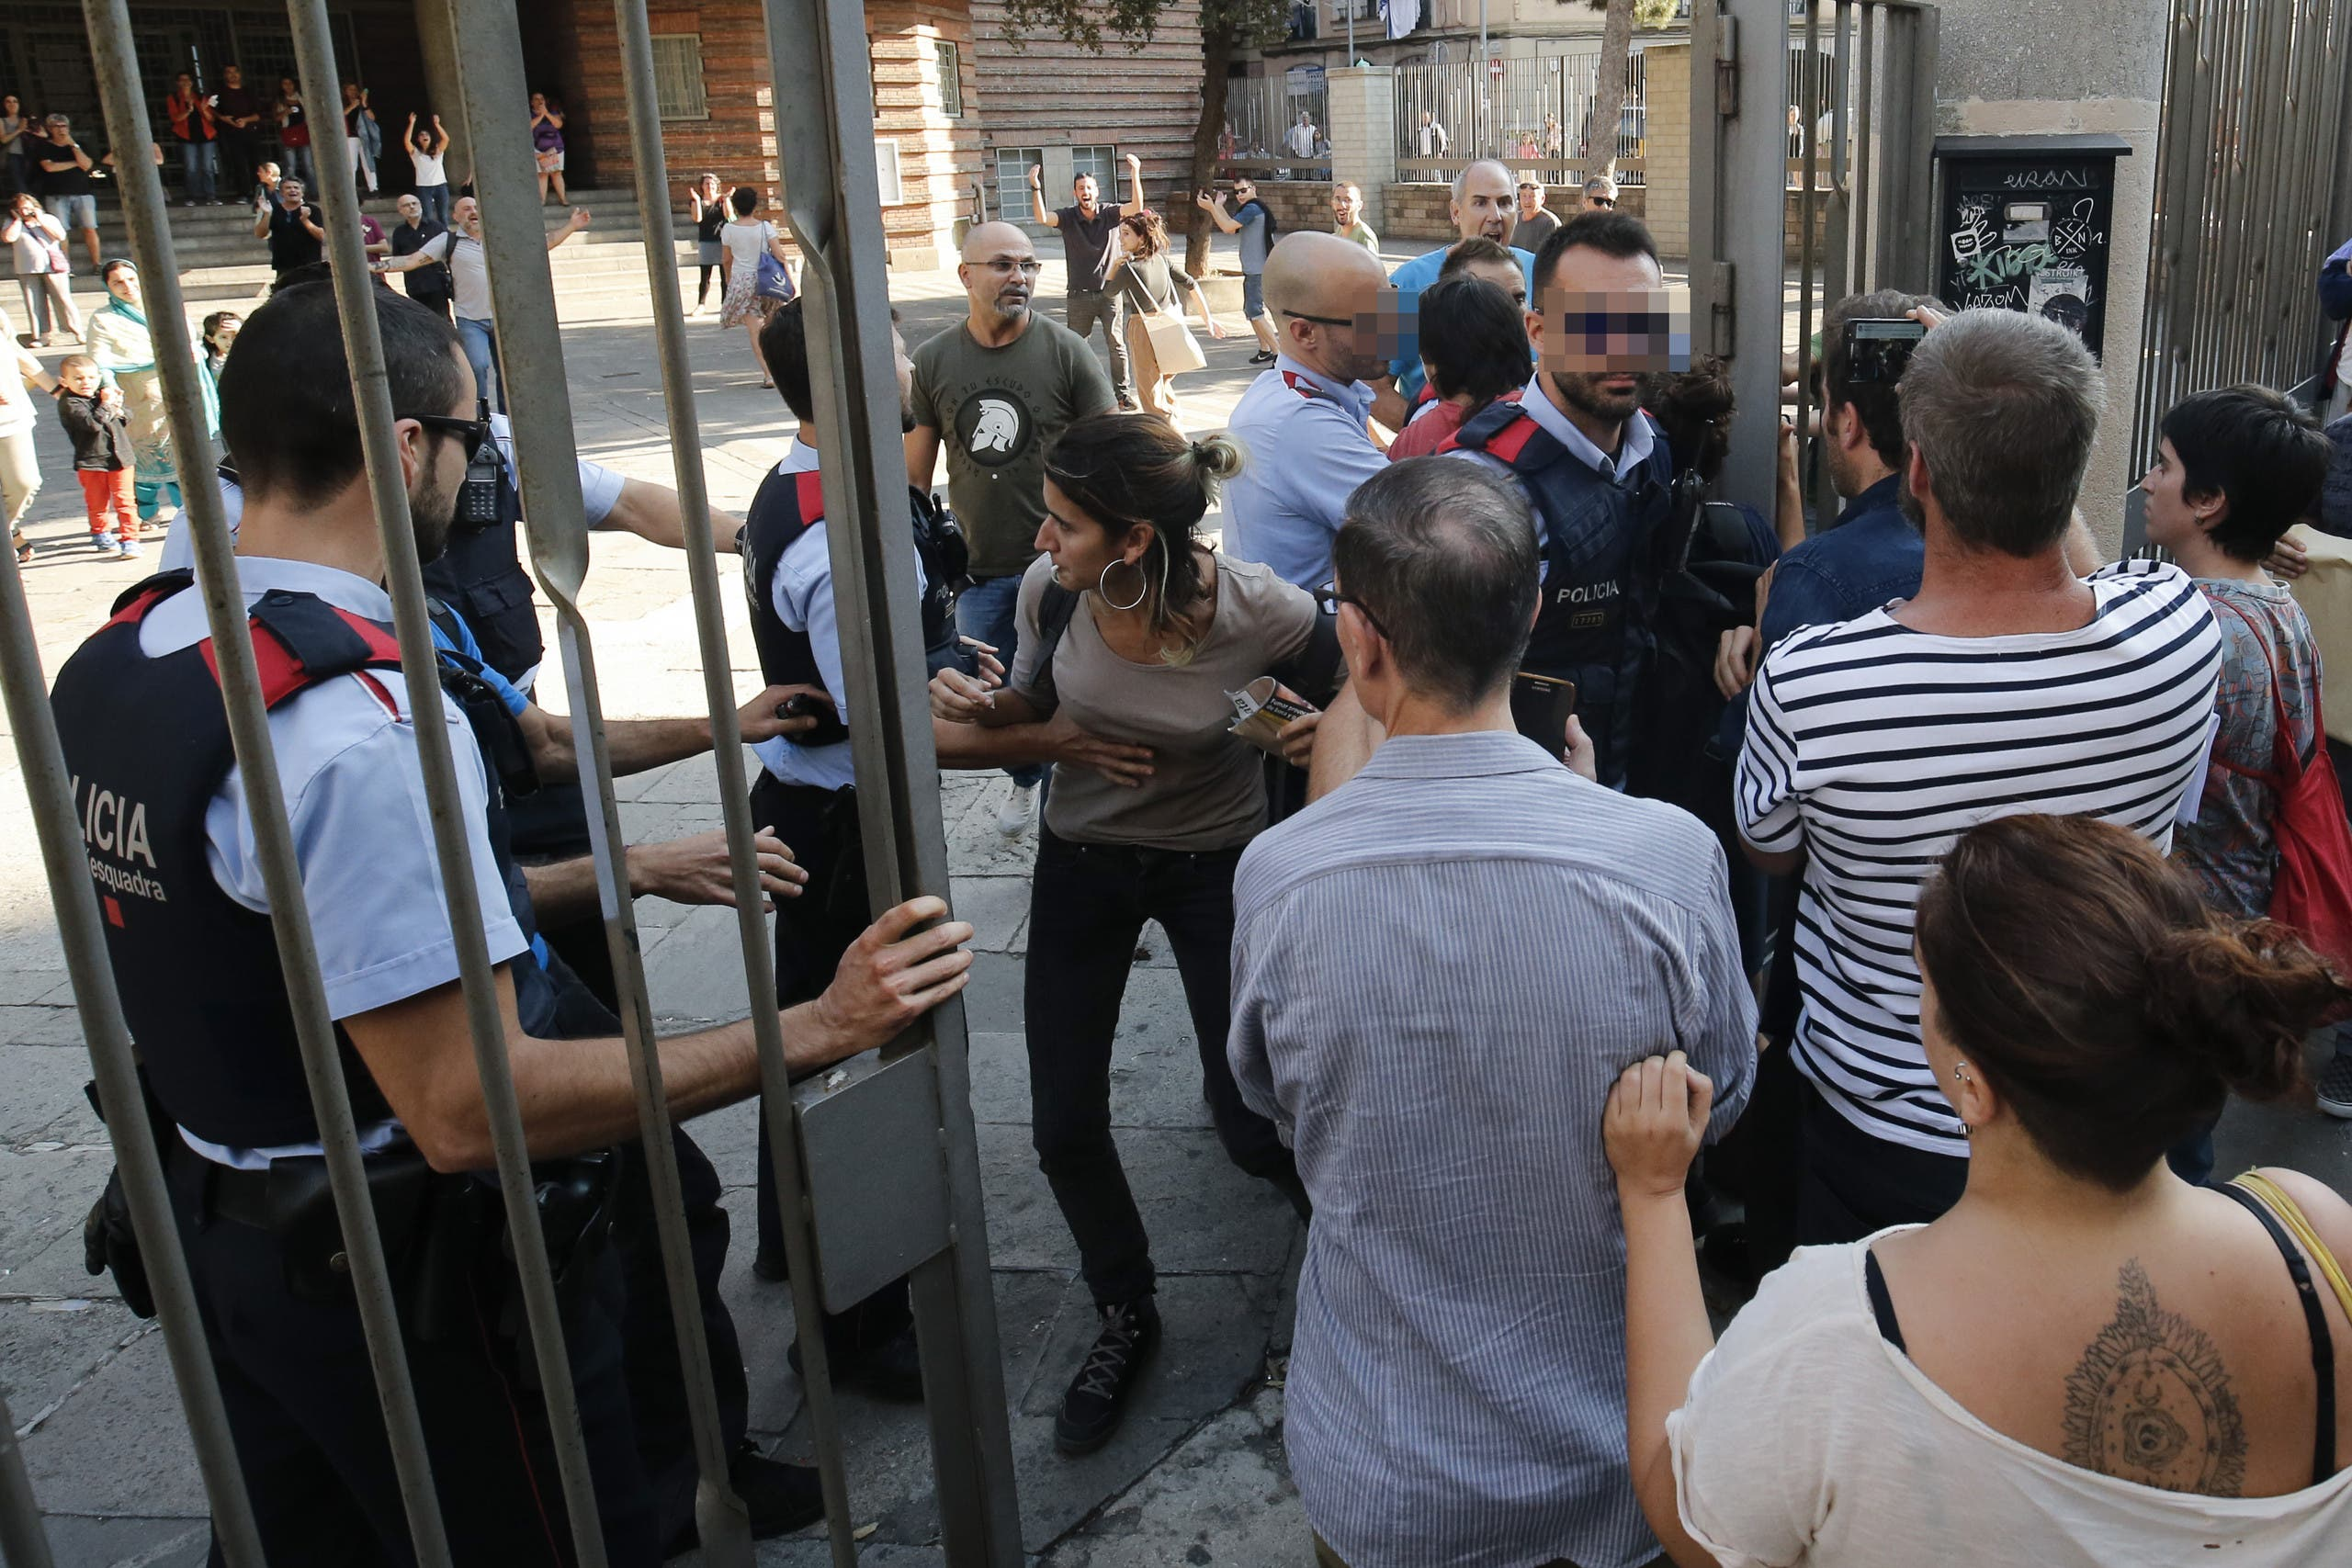 Catalan police officers 'Mossos d'Esquadra' try stop pro-referendum people from going into 'Escola Collaso i Gil' school on September 29, 2017 in Barcelona. (AFP)